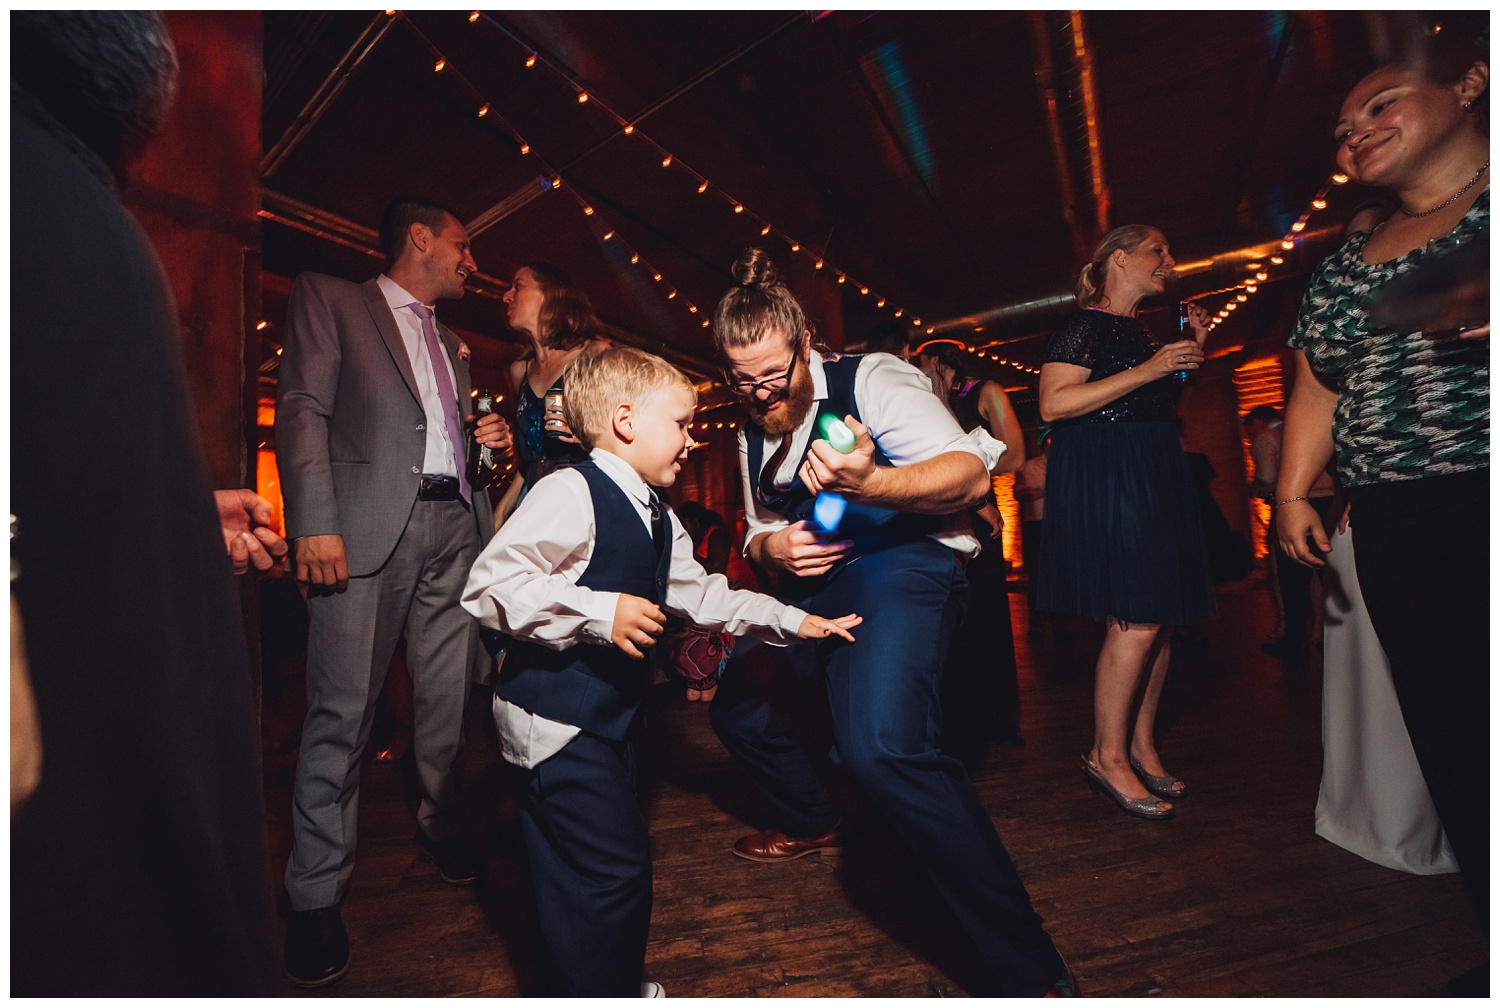 Lacuna Lofts Chicago Wedding Photography - The Adamkovi, Epic Dance Part, a ring bearer and groom